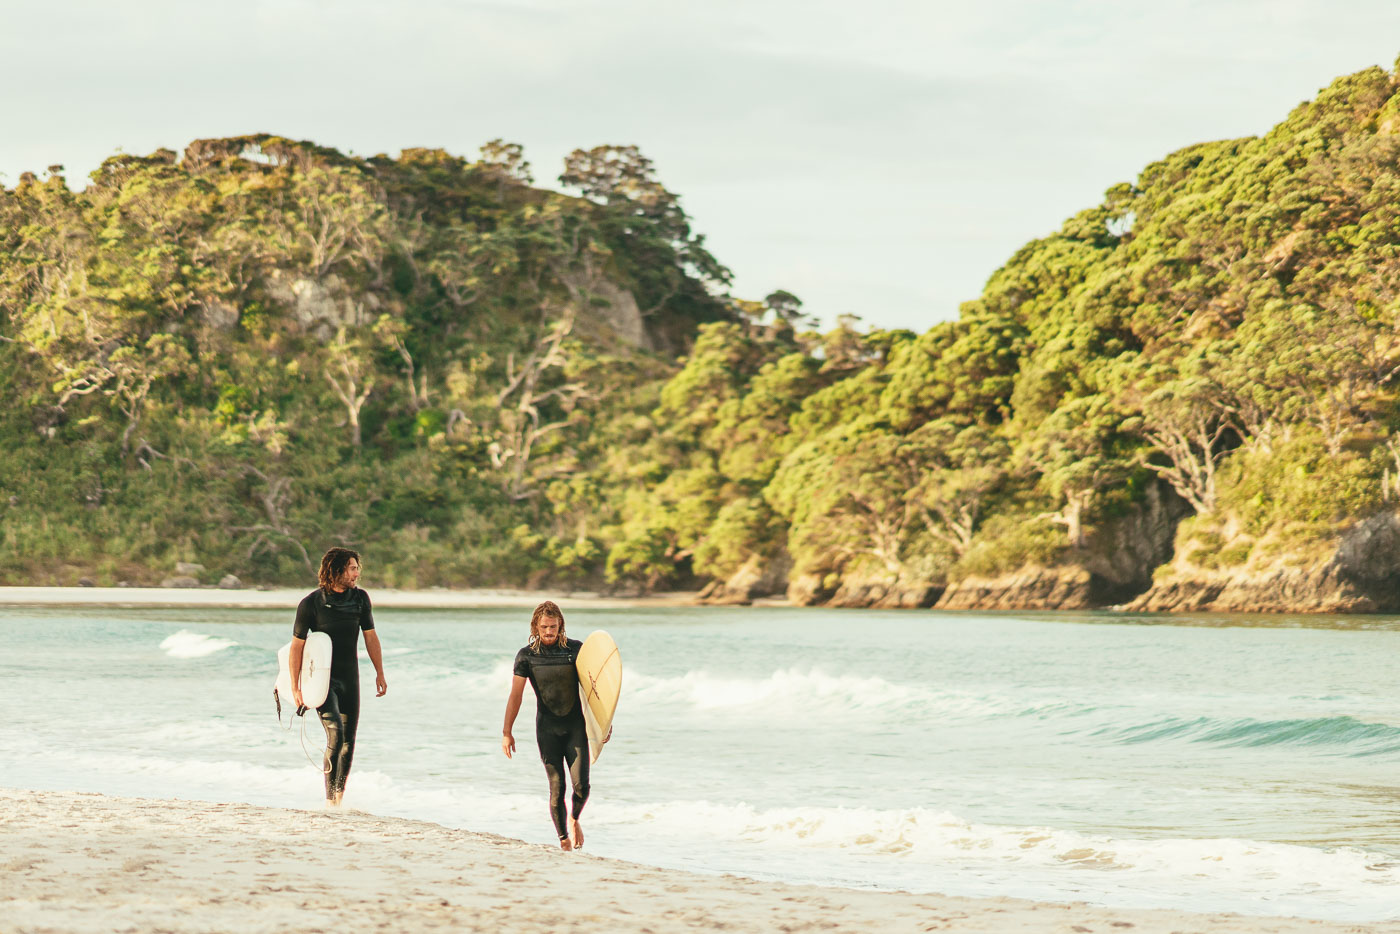 Evening surf at Great Barrier Island in New Zealand. Photo by Sony Ambassador Stefan Haworth